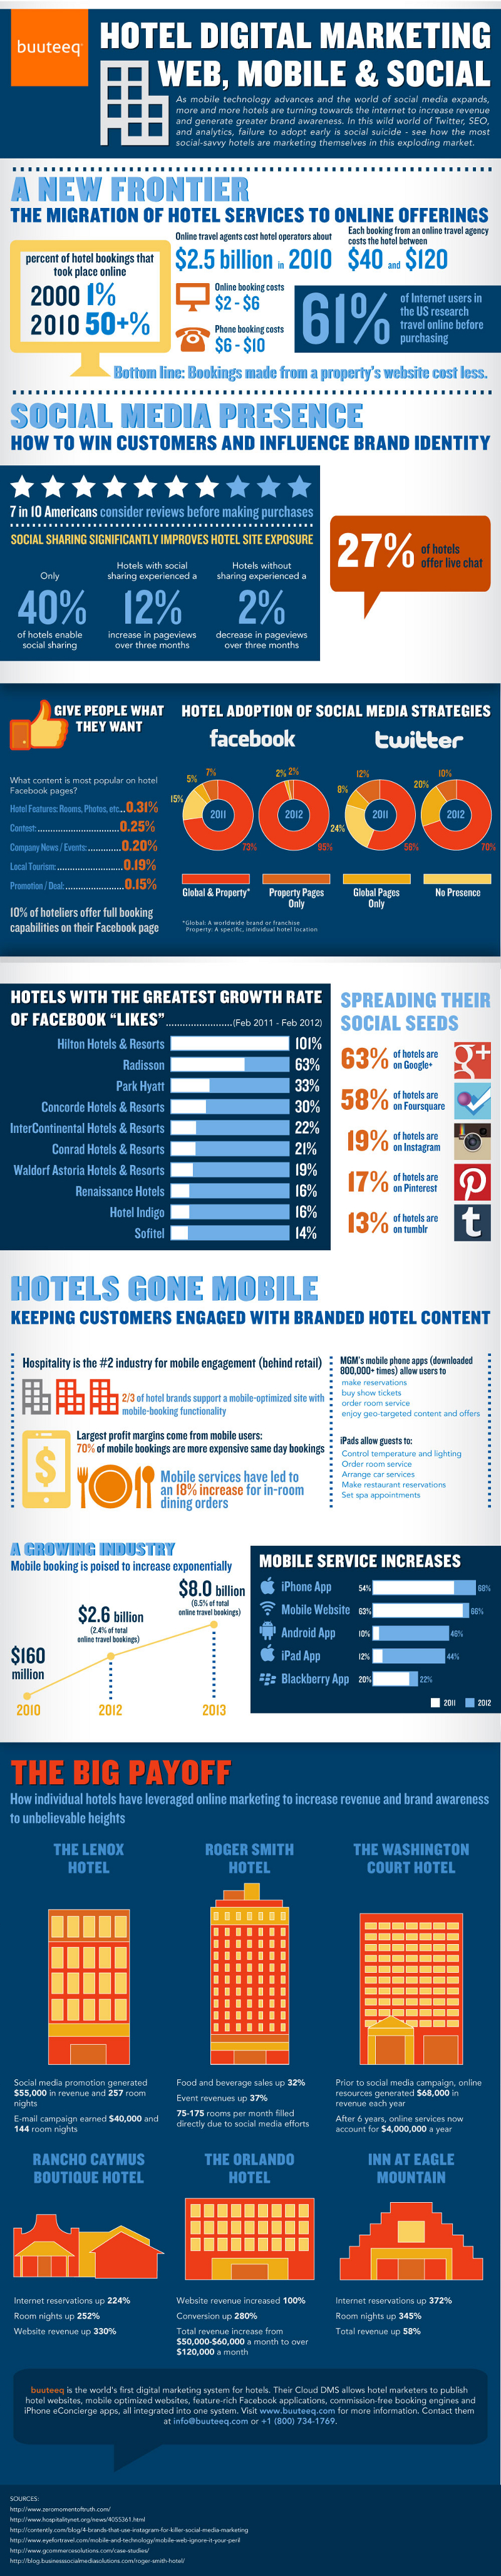 Hotel-Marketing-Social-Media